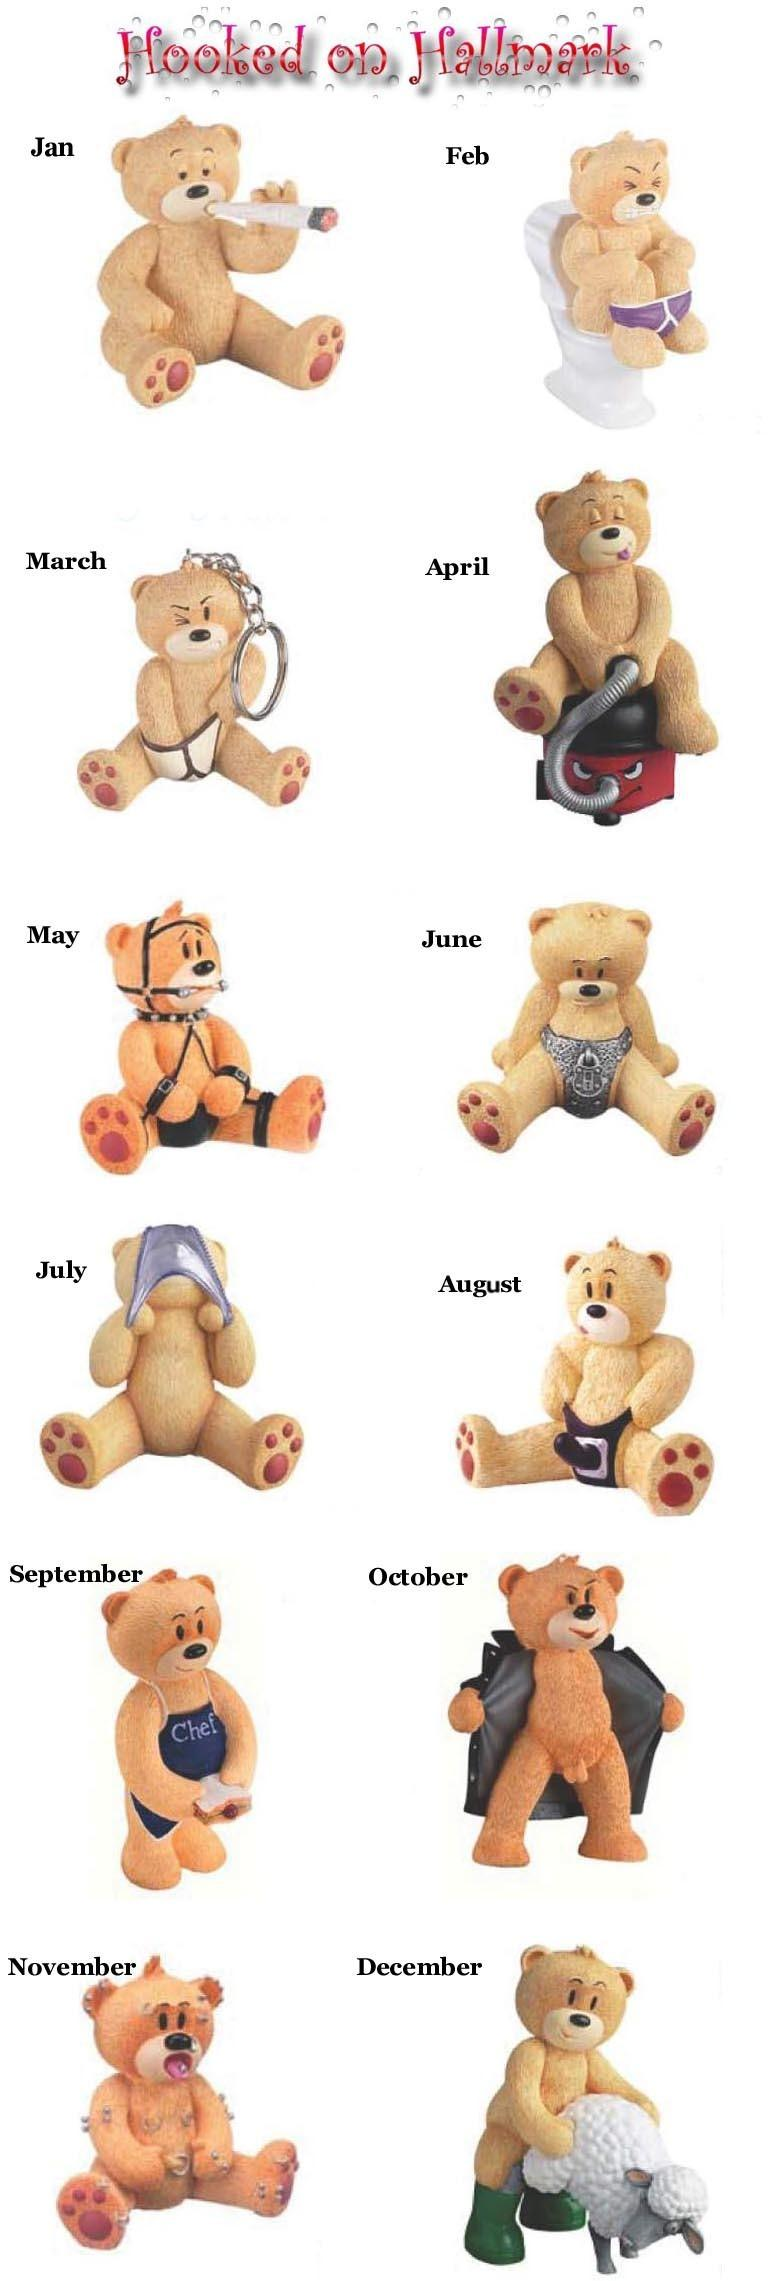 Click image for larger version  Name:teddy.jpg Views:150 Size:131.7 KB ID:3078